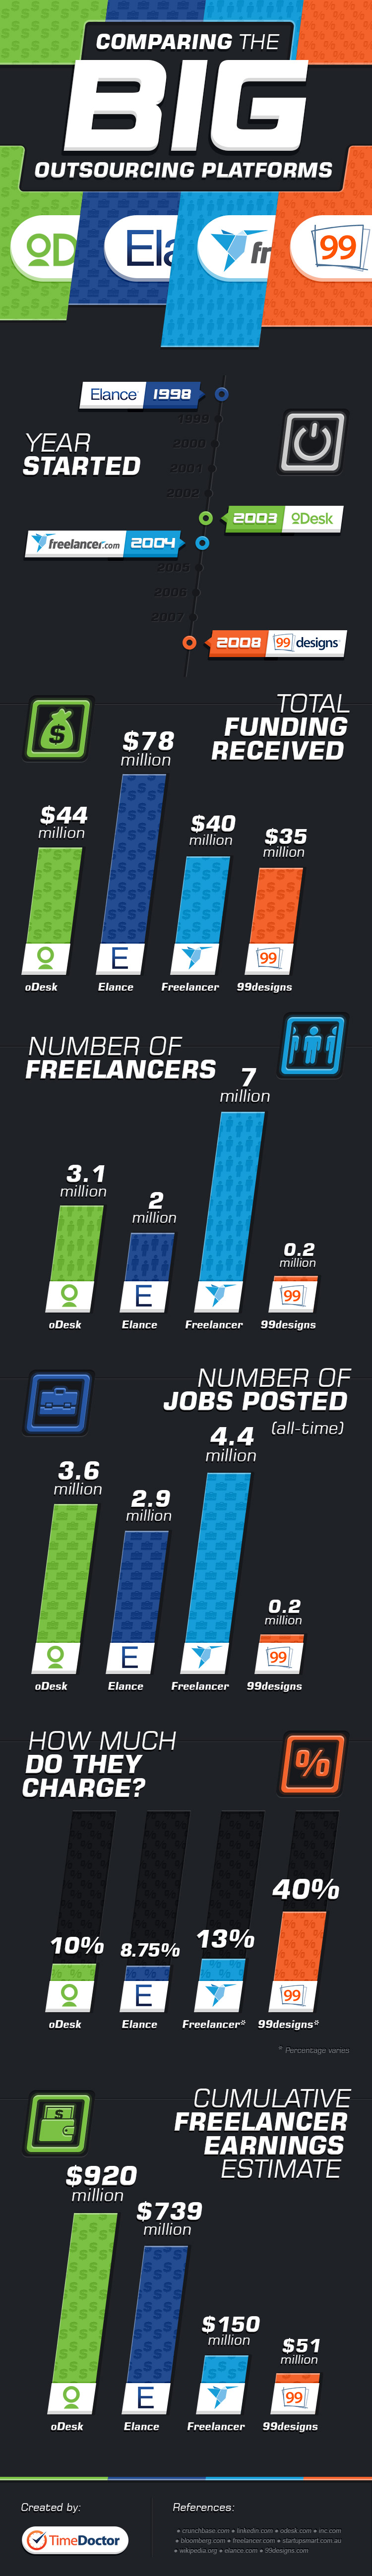 Staff.com - Comparing the Big Outsourcing Platforms Infographic